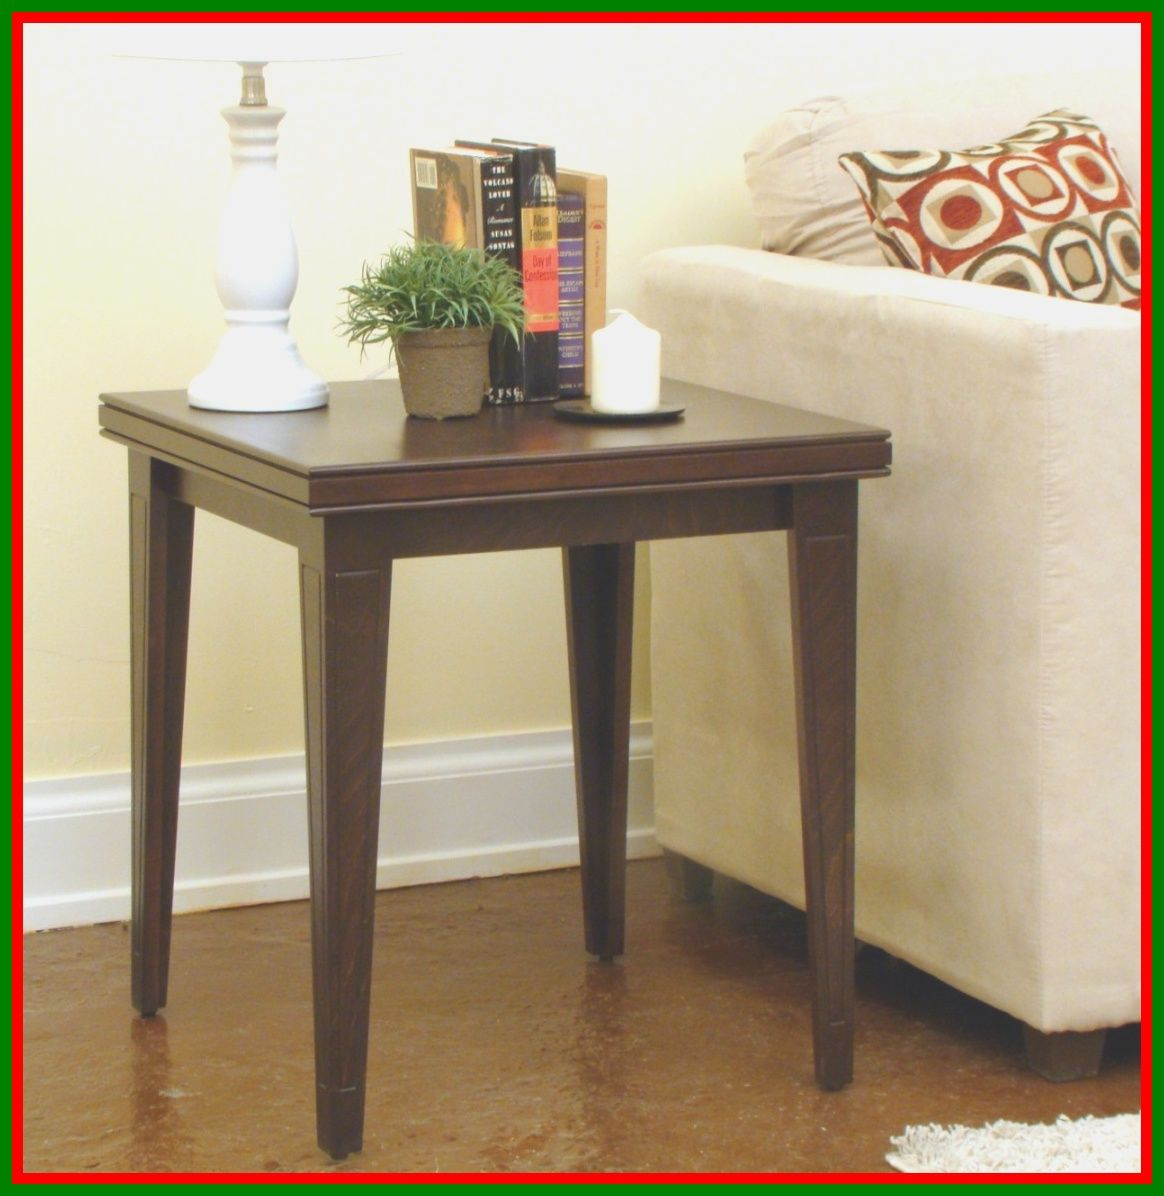 84 Reference Of Sofa End Table Tall In 2020 Sofa End Tables Sofa Table Design Diy Sofa Table